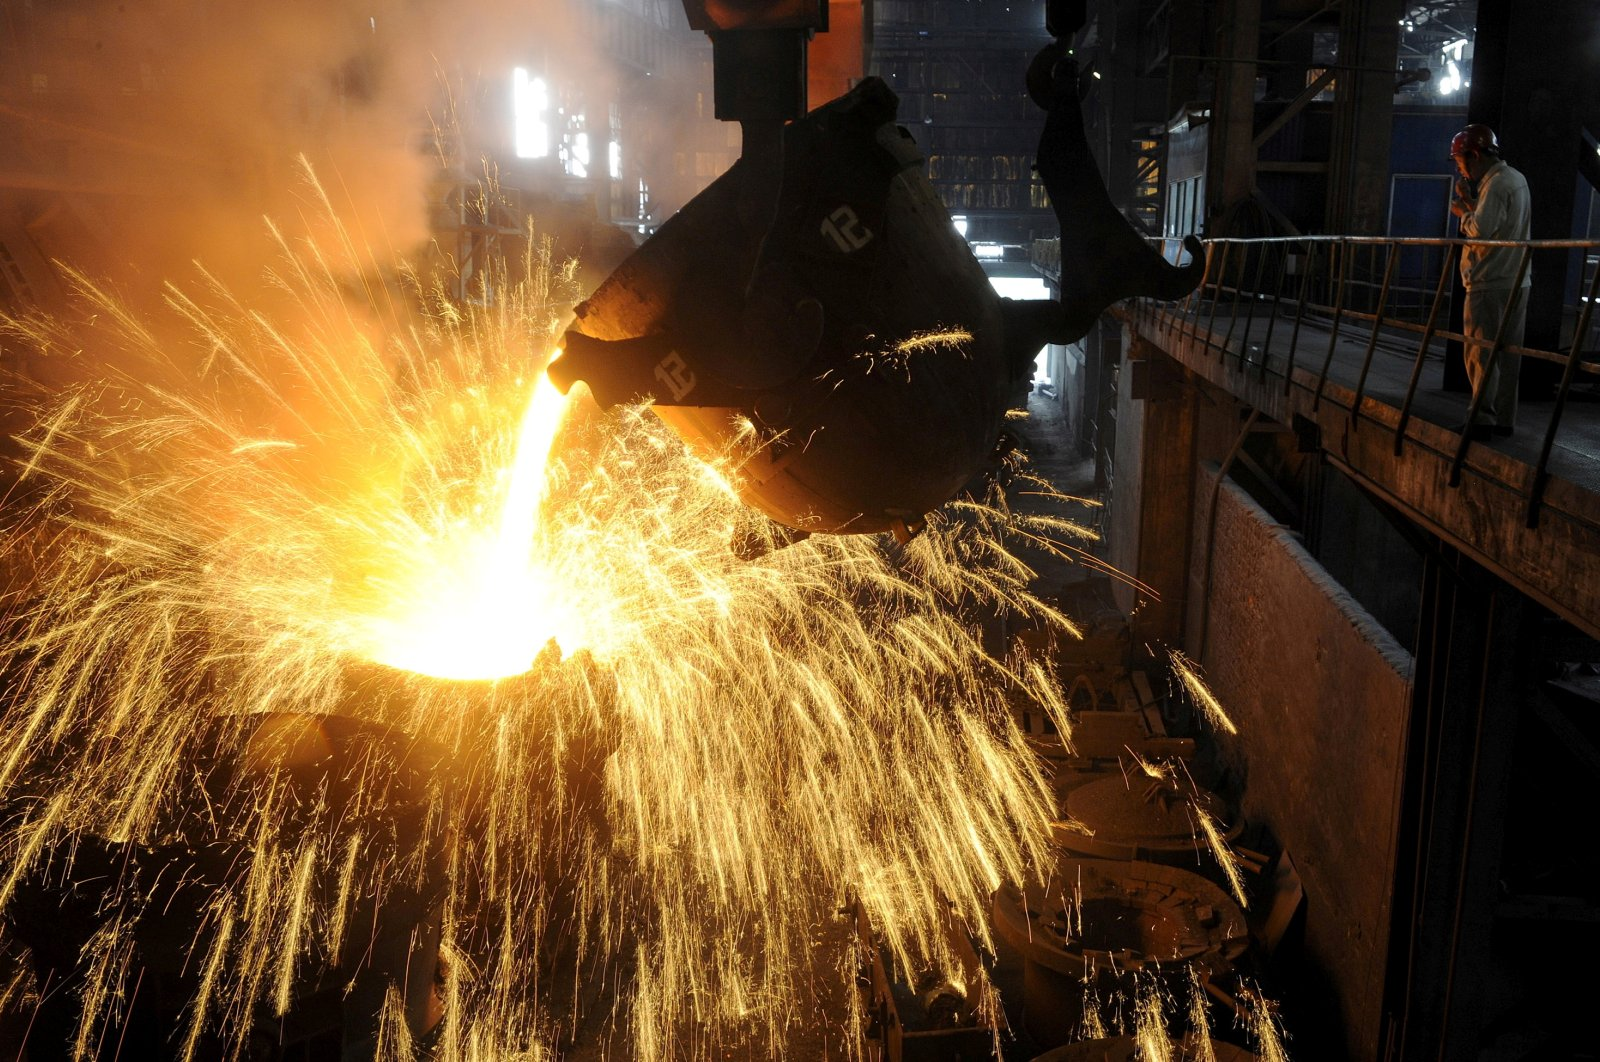 An employee monitors molten iron being poured into a container at a steel plant in Hefei, Anhui province, China, Sept. 9, 2013. (Reuters Photo)